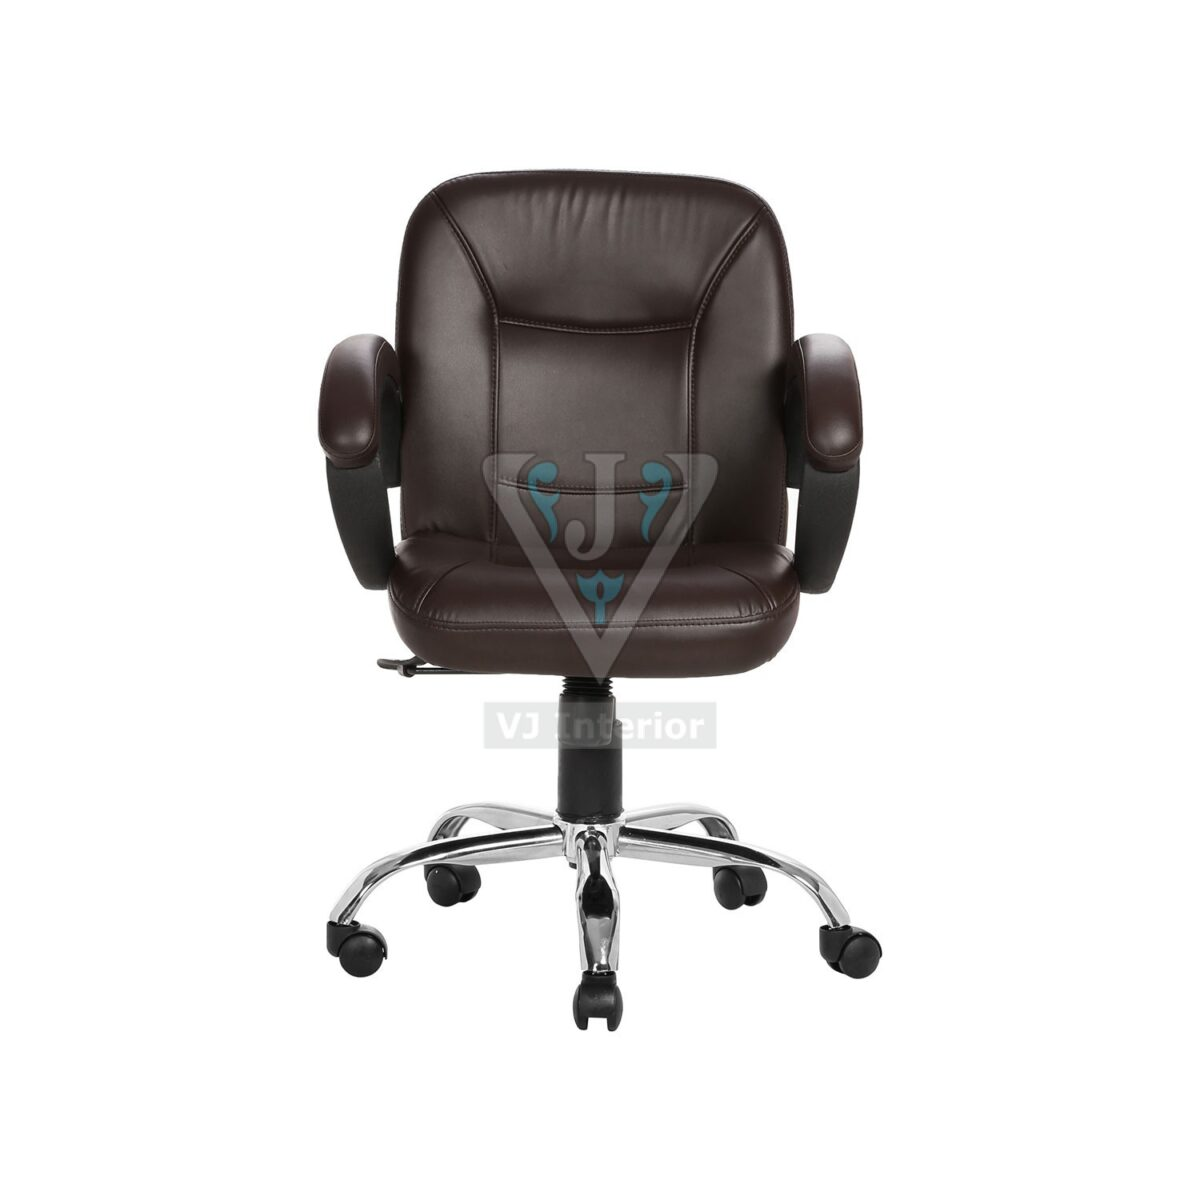 THE ACABADO LB WORKSTAION CHAIR BROWN